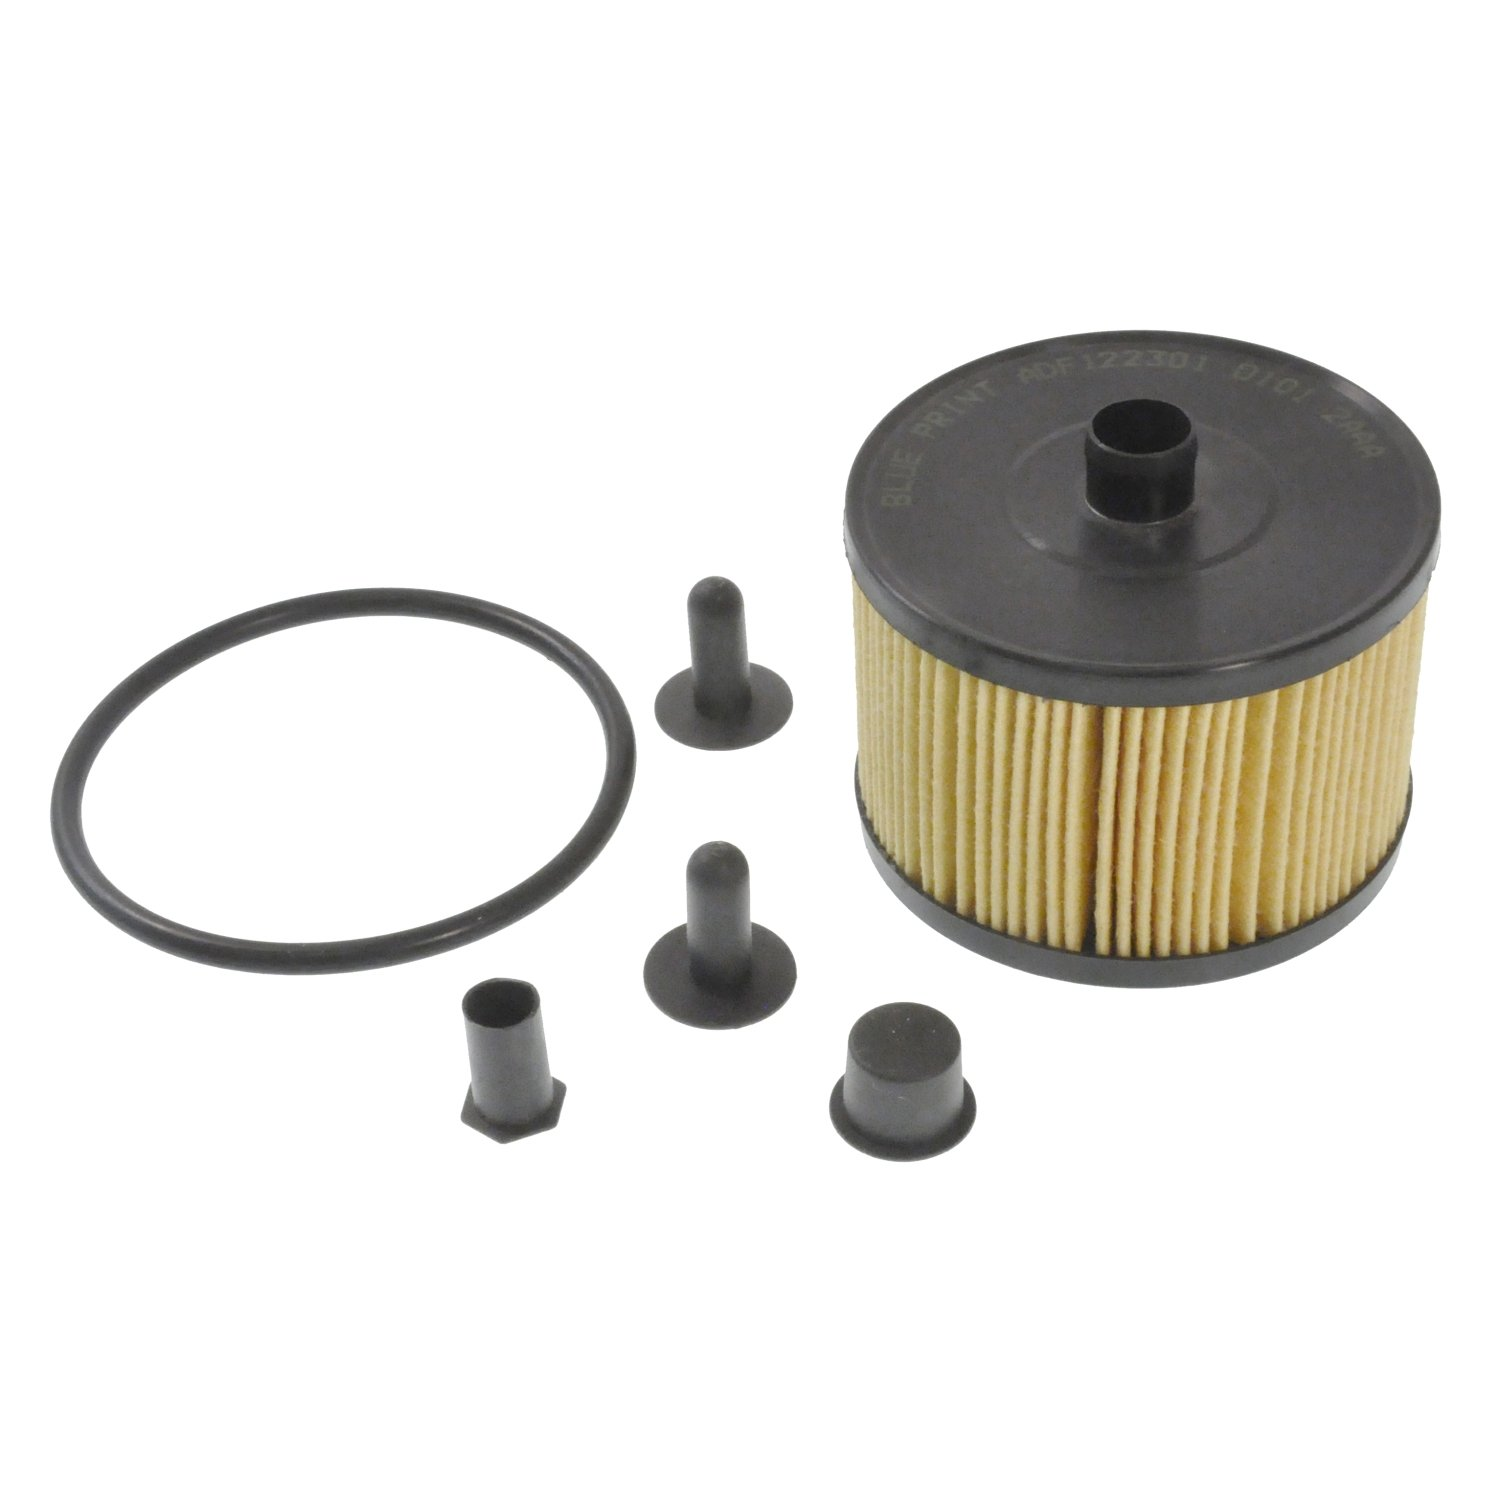 Blue Print ADF122301 fuel filter with seal ring  - Pack of 1 Automotive Distributors Ltd.